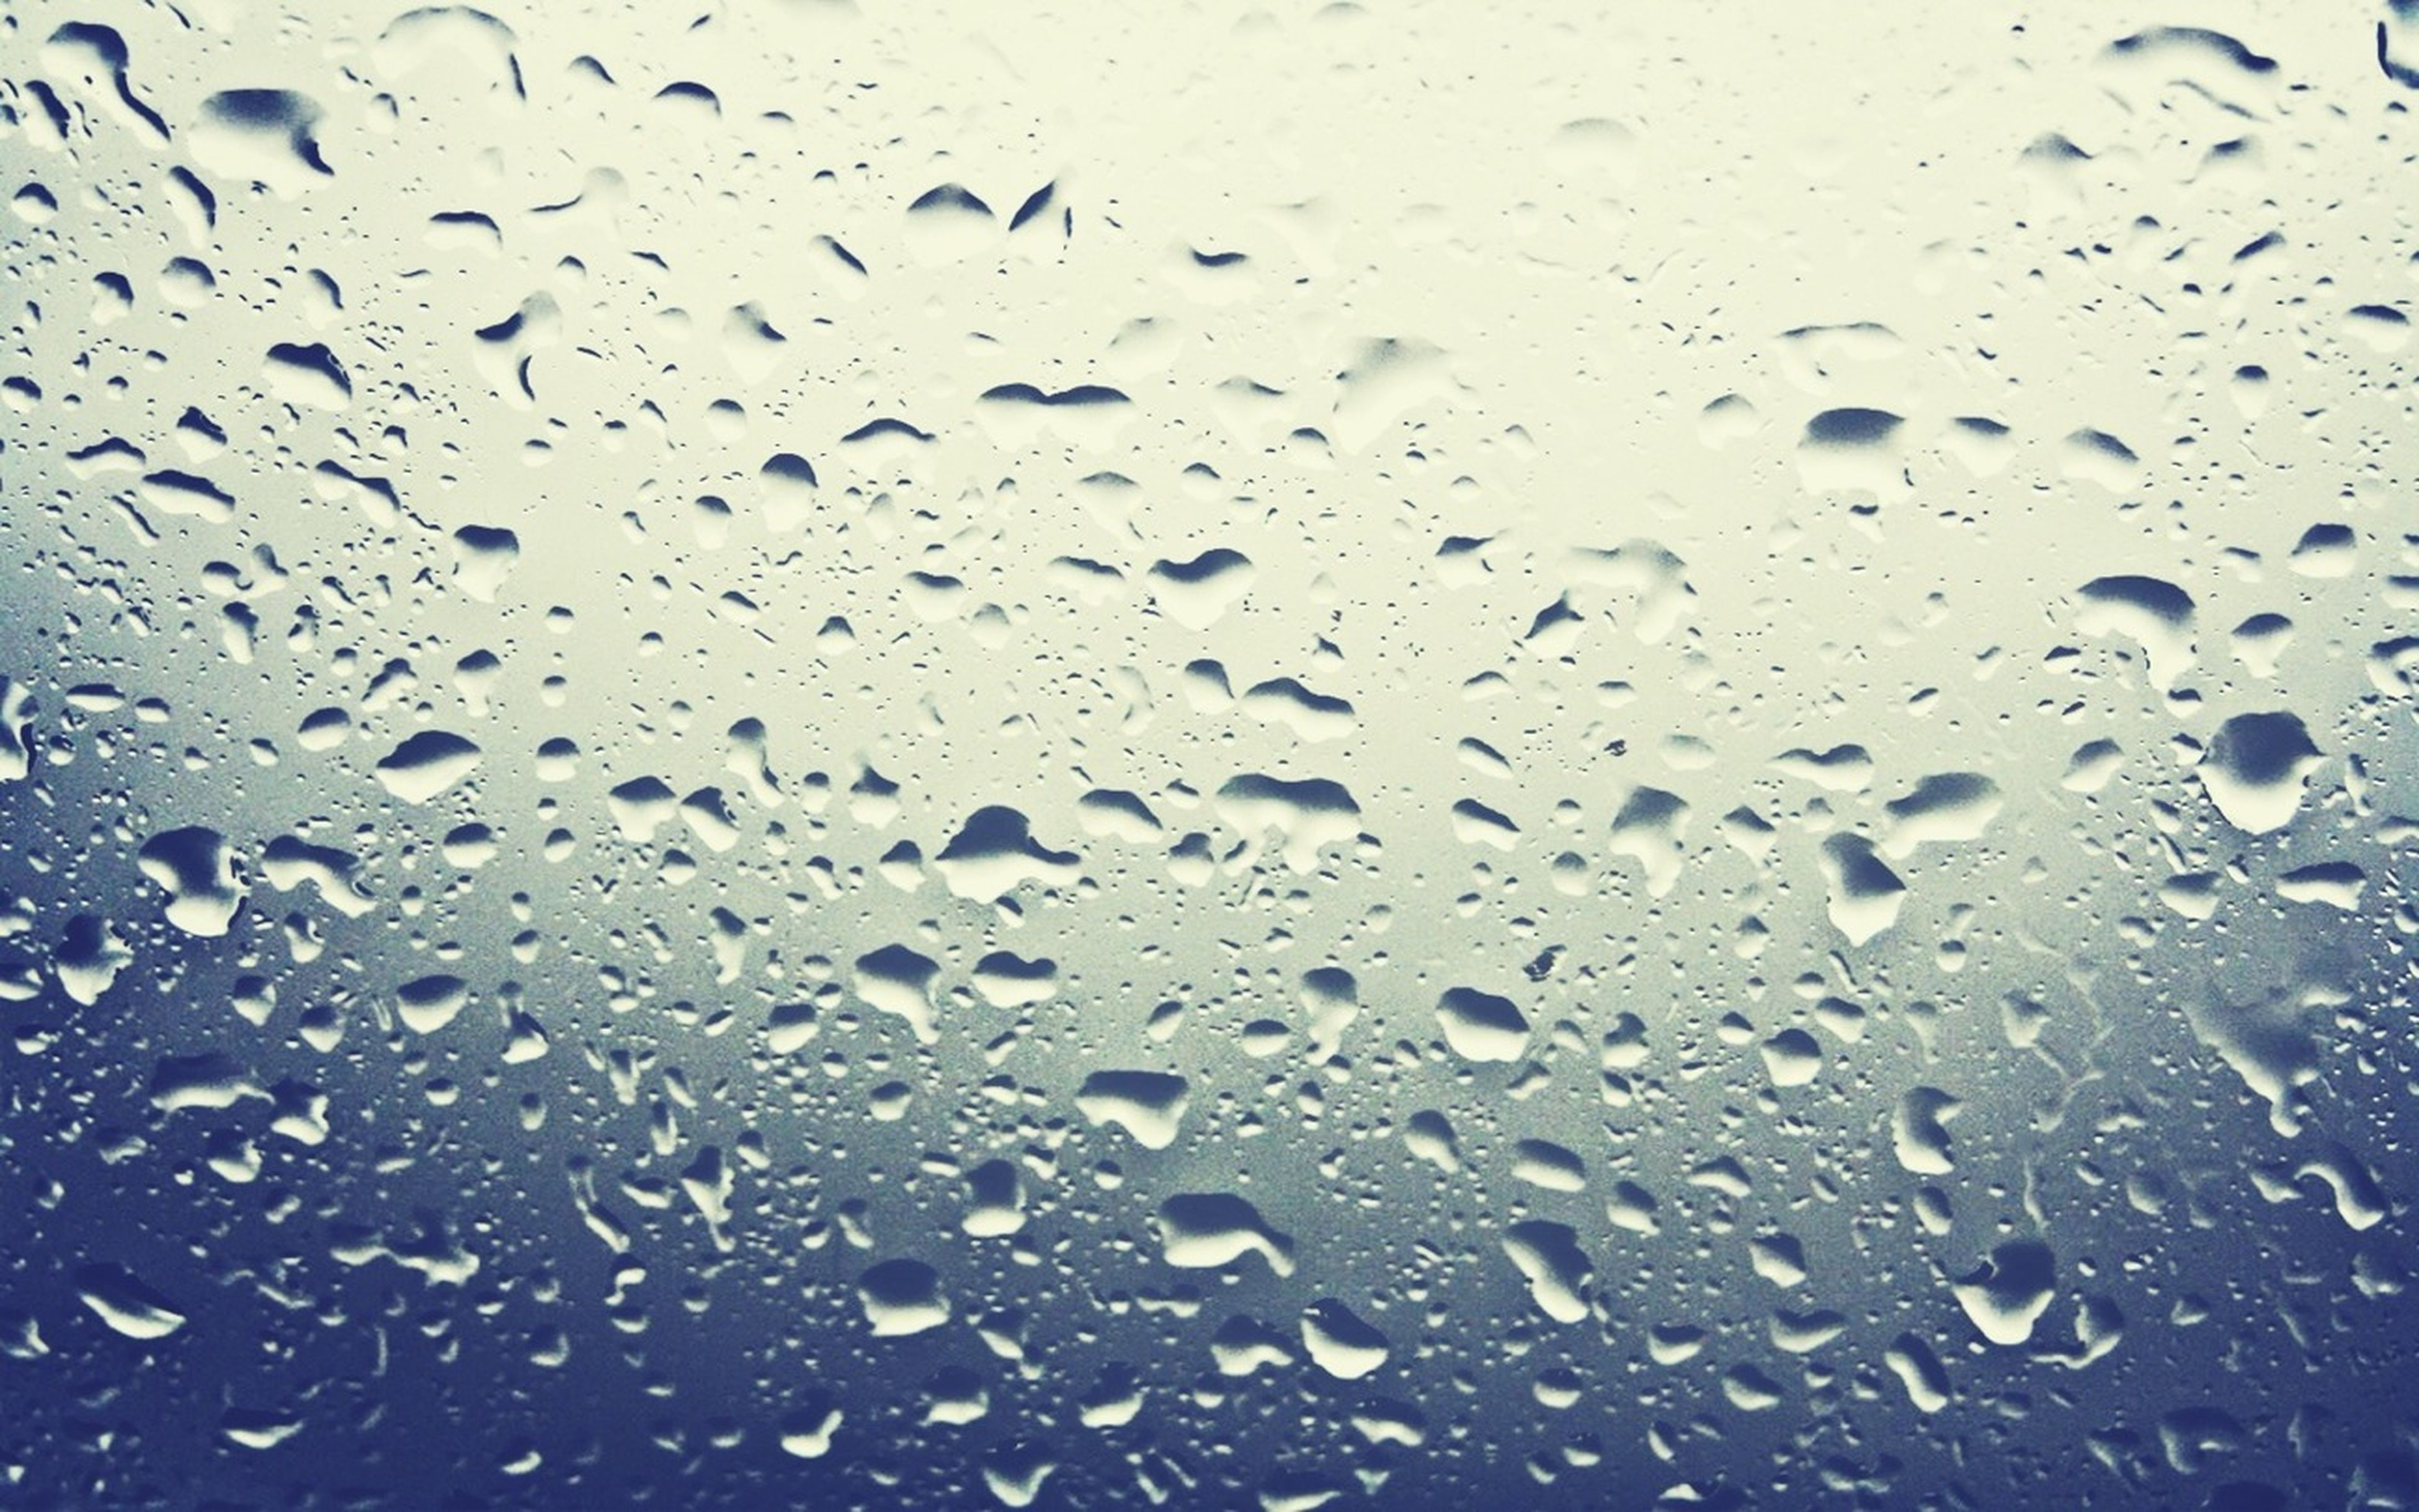 drop, wet, water, window, rain, transparent, glass - material, full frame, raindrop, backgrounds, weather, indoors, season, glass, close-up, sky, water drop, droplet, focus on foreground, monsoon